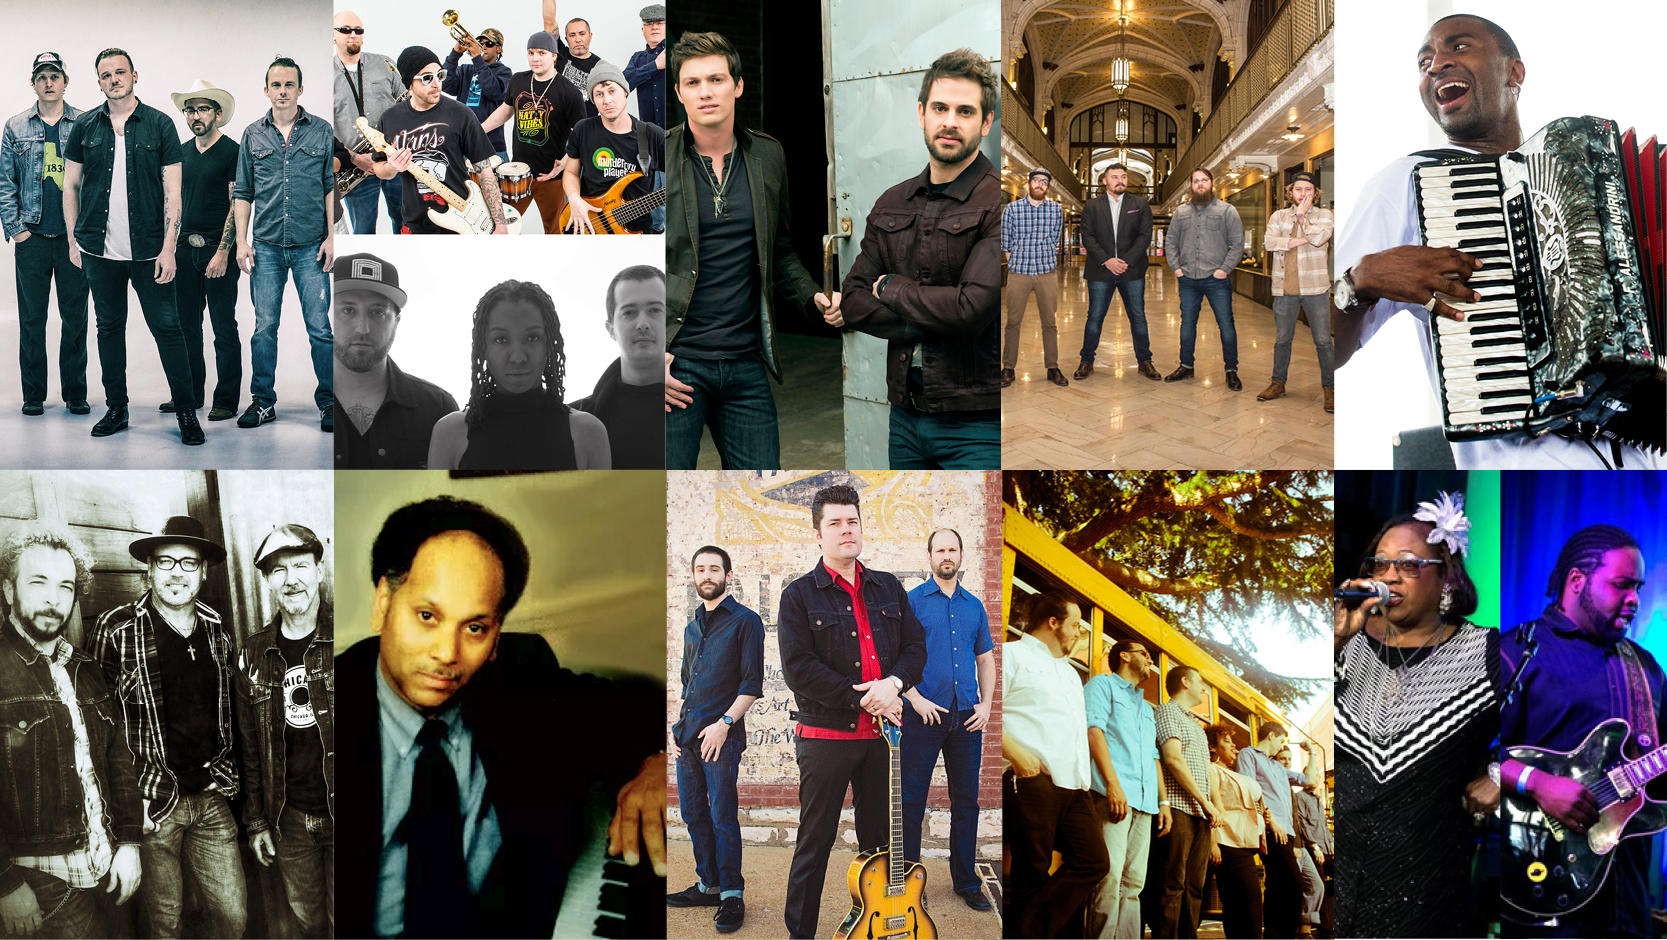 Artists pictured above (L to R, from top to bottom): Vandoliers, Unifyah and Mathis & The Pirates, Waterloo Revival, Old Salt Union, Curley Taylor, Ptah Williams, The South Austin Moonlighters, The Trip Daddy's, Dirty Revival, and Marquise Knox ft. Renee Smith.